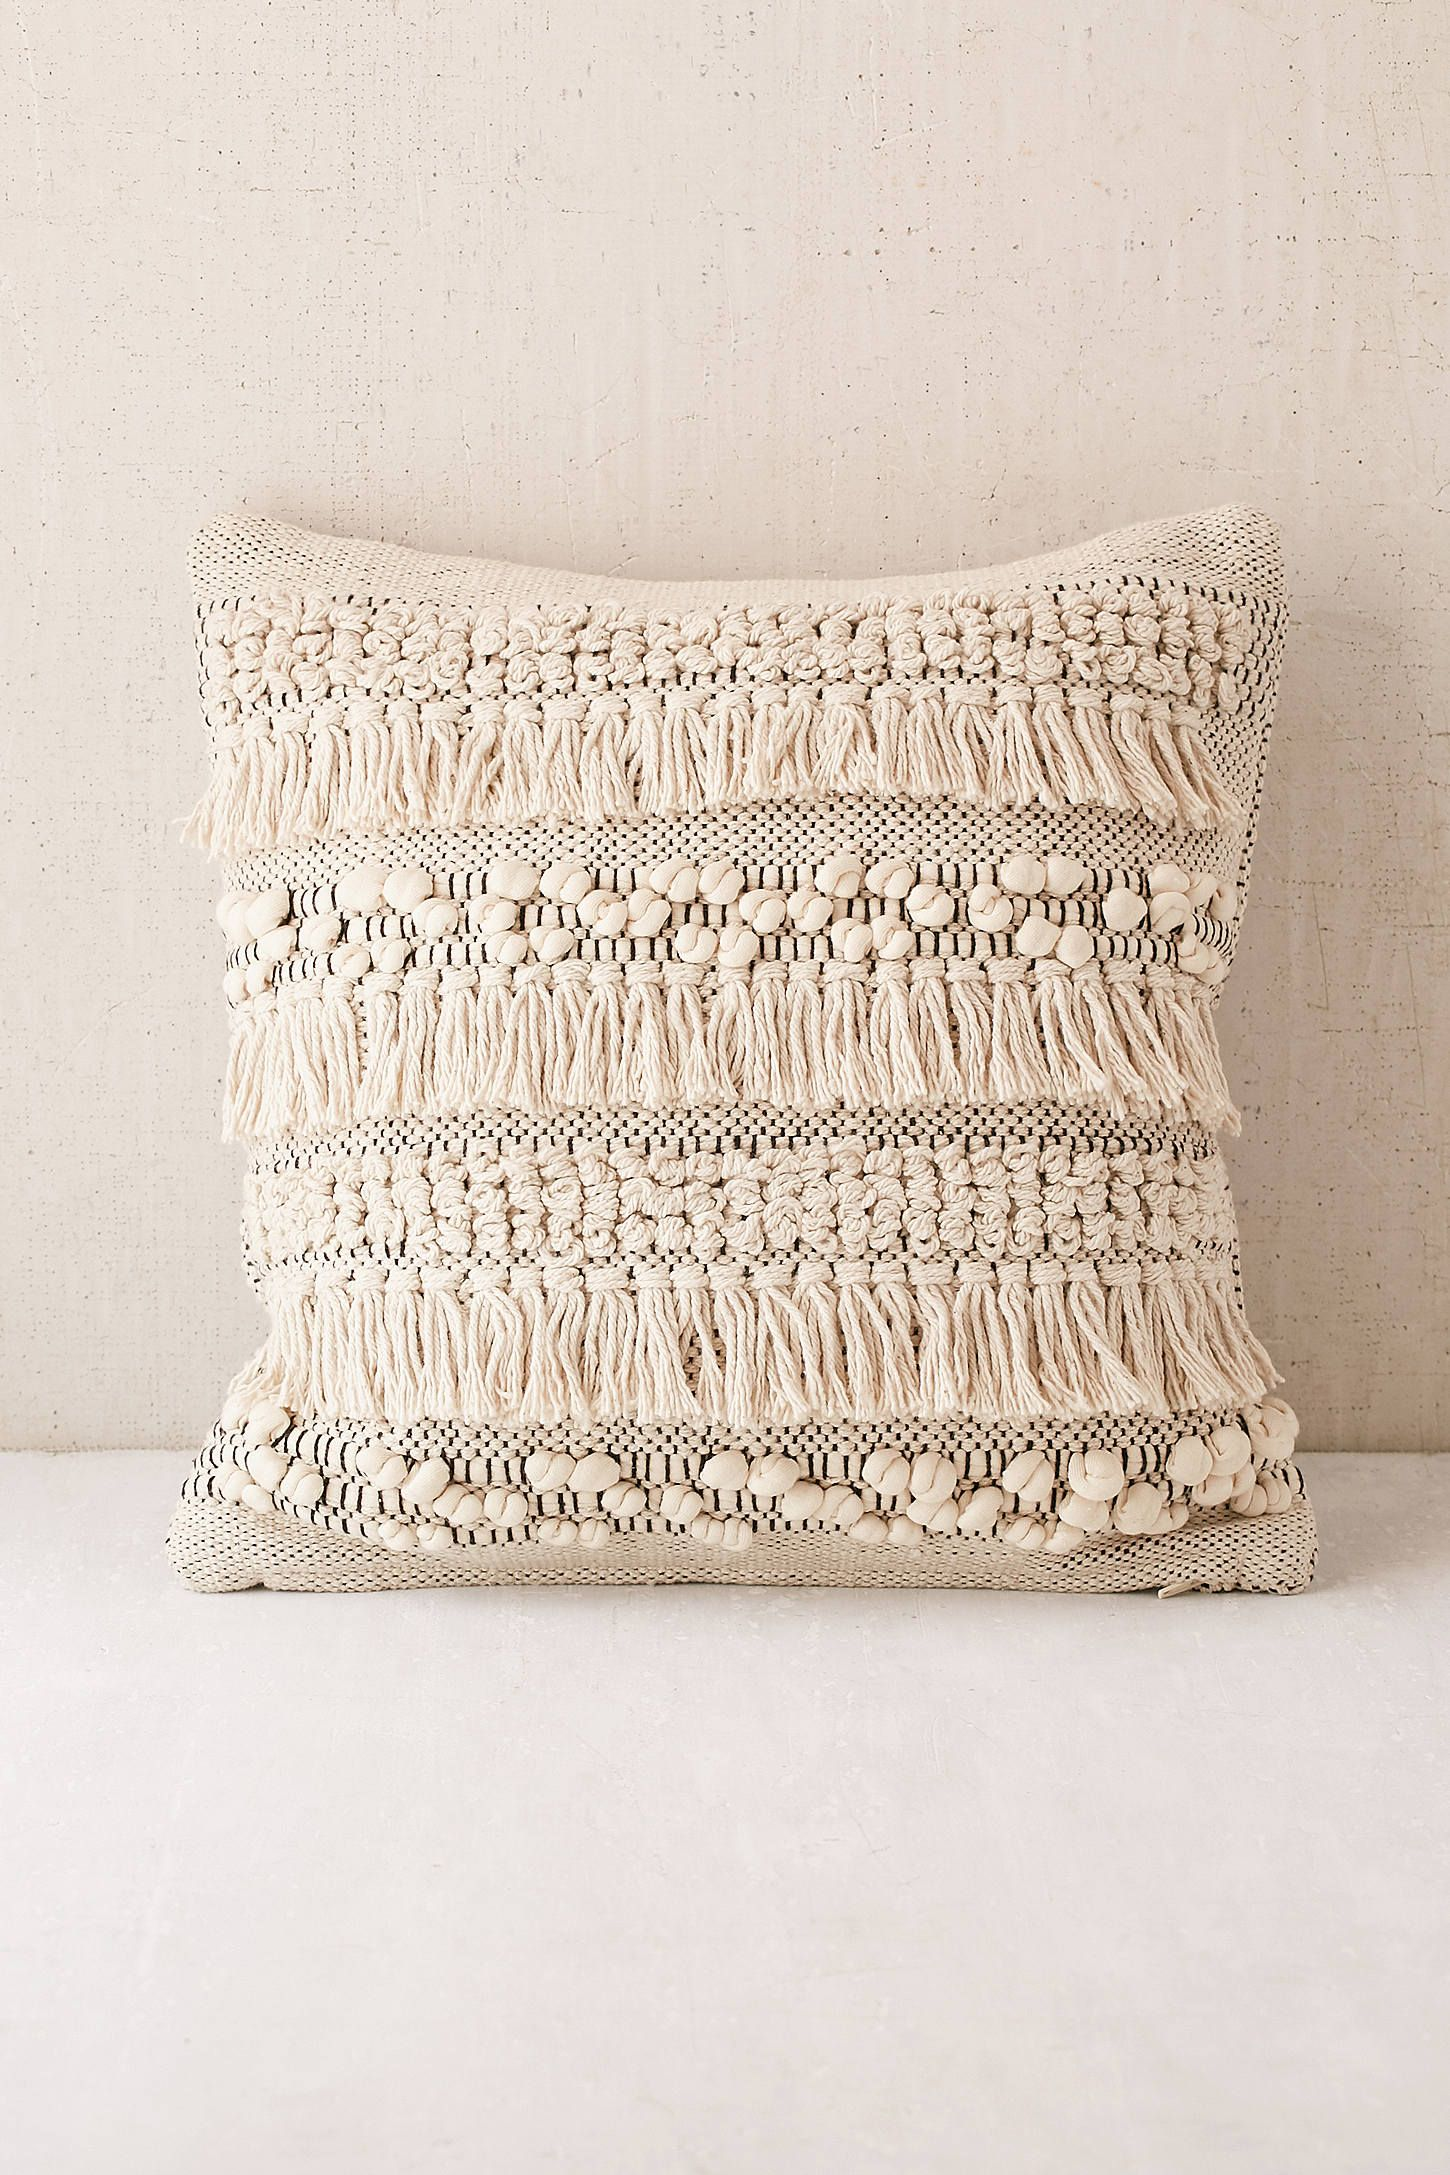 throw dot pin is pillow hand woven accessories shop with pillows grey light s wool blu collection pinterest online gam from textured a